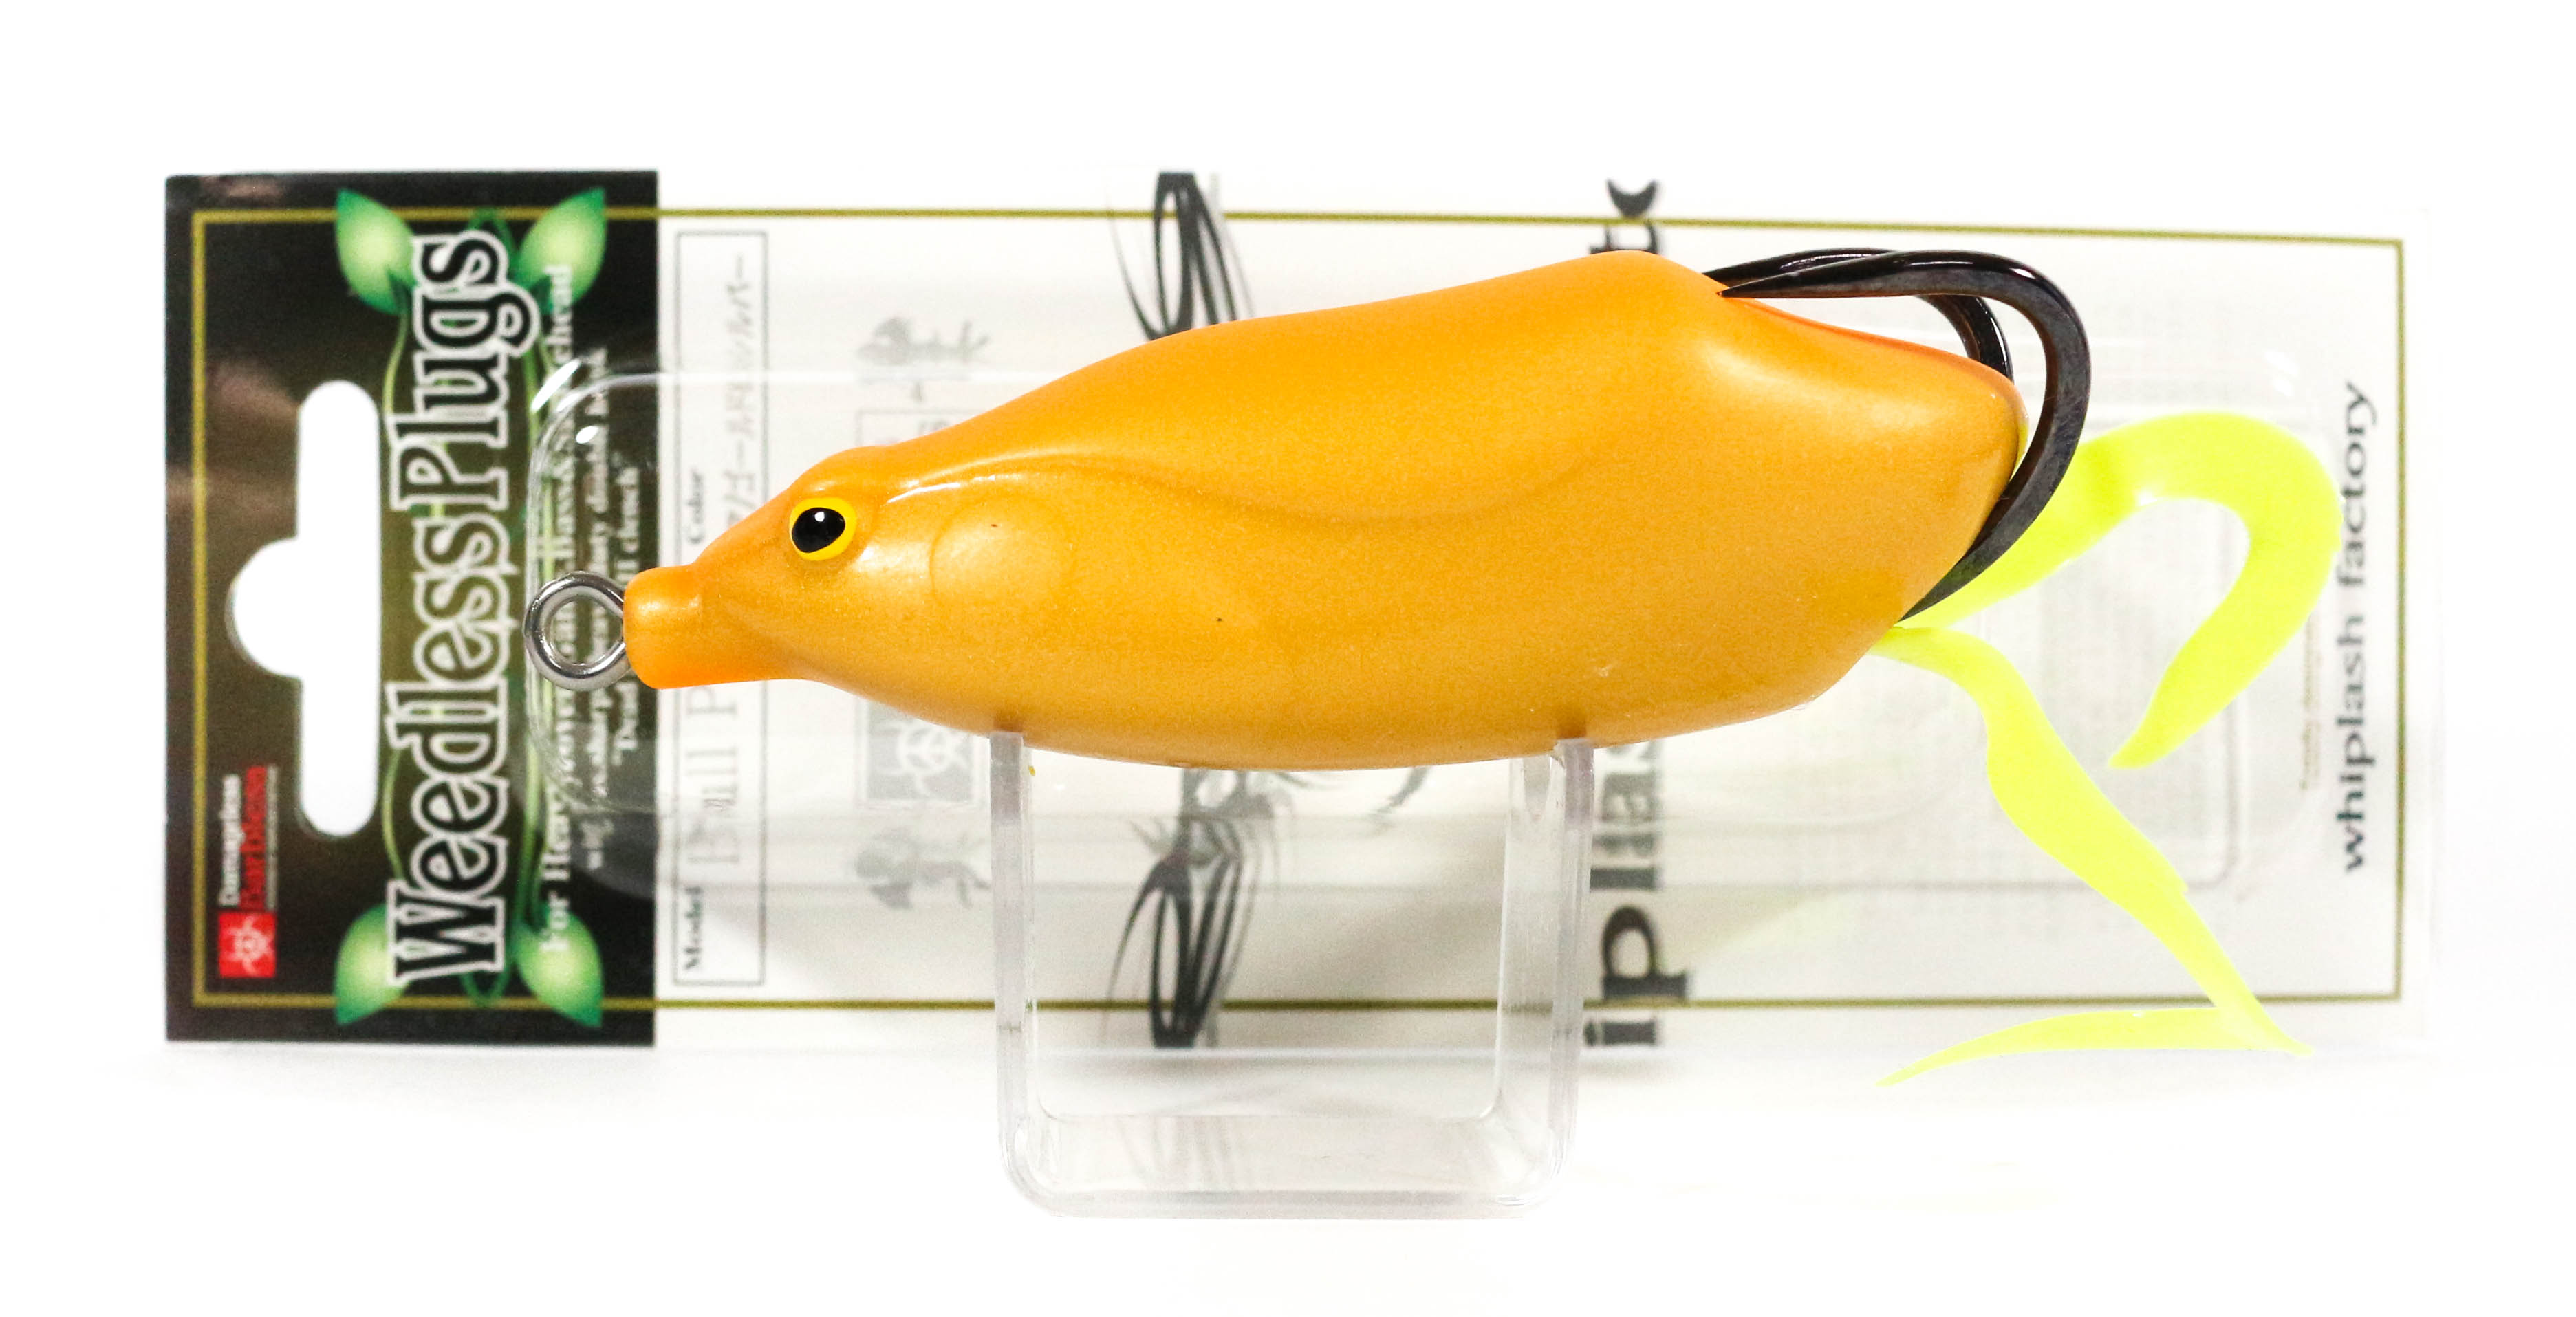 Sale Whiplash Factory Bull Pup DC Frog Soft Plastic Floating Lure P7 (6408)